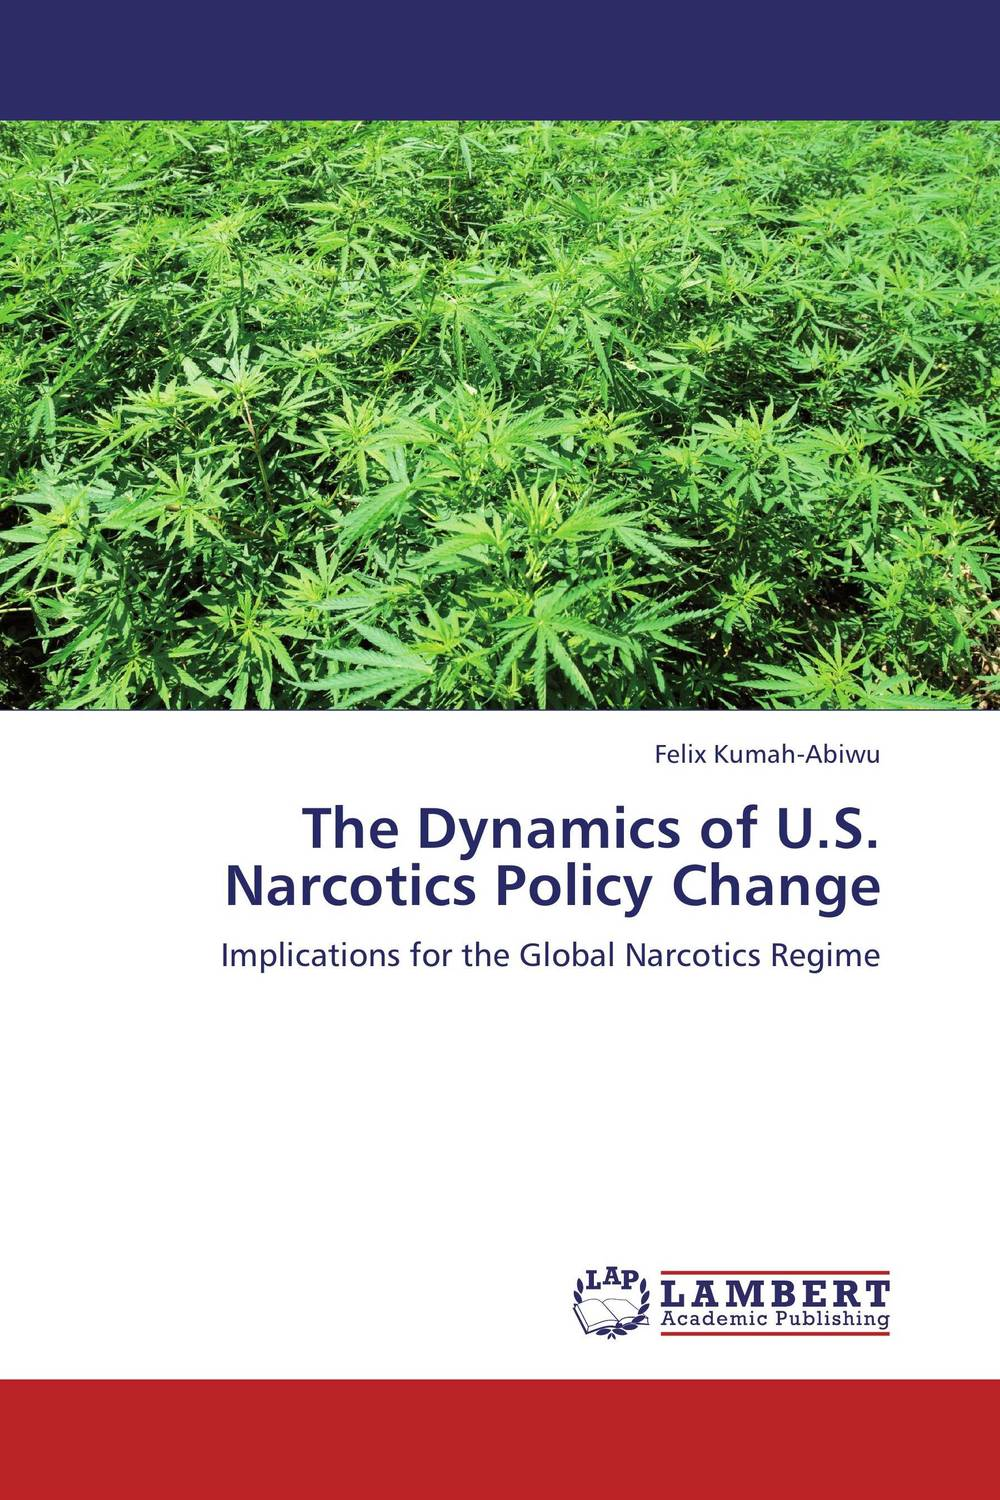 The Dynamics of U.S. Narcotics Policy Change